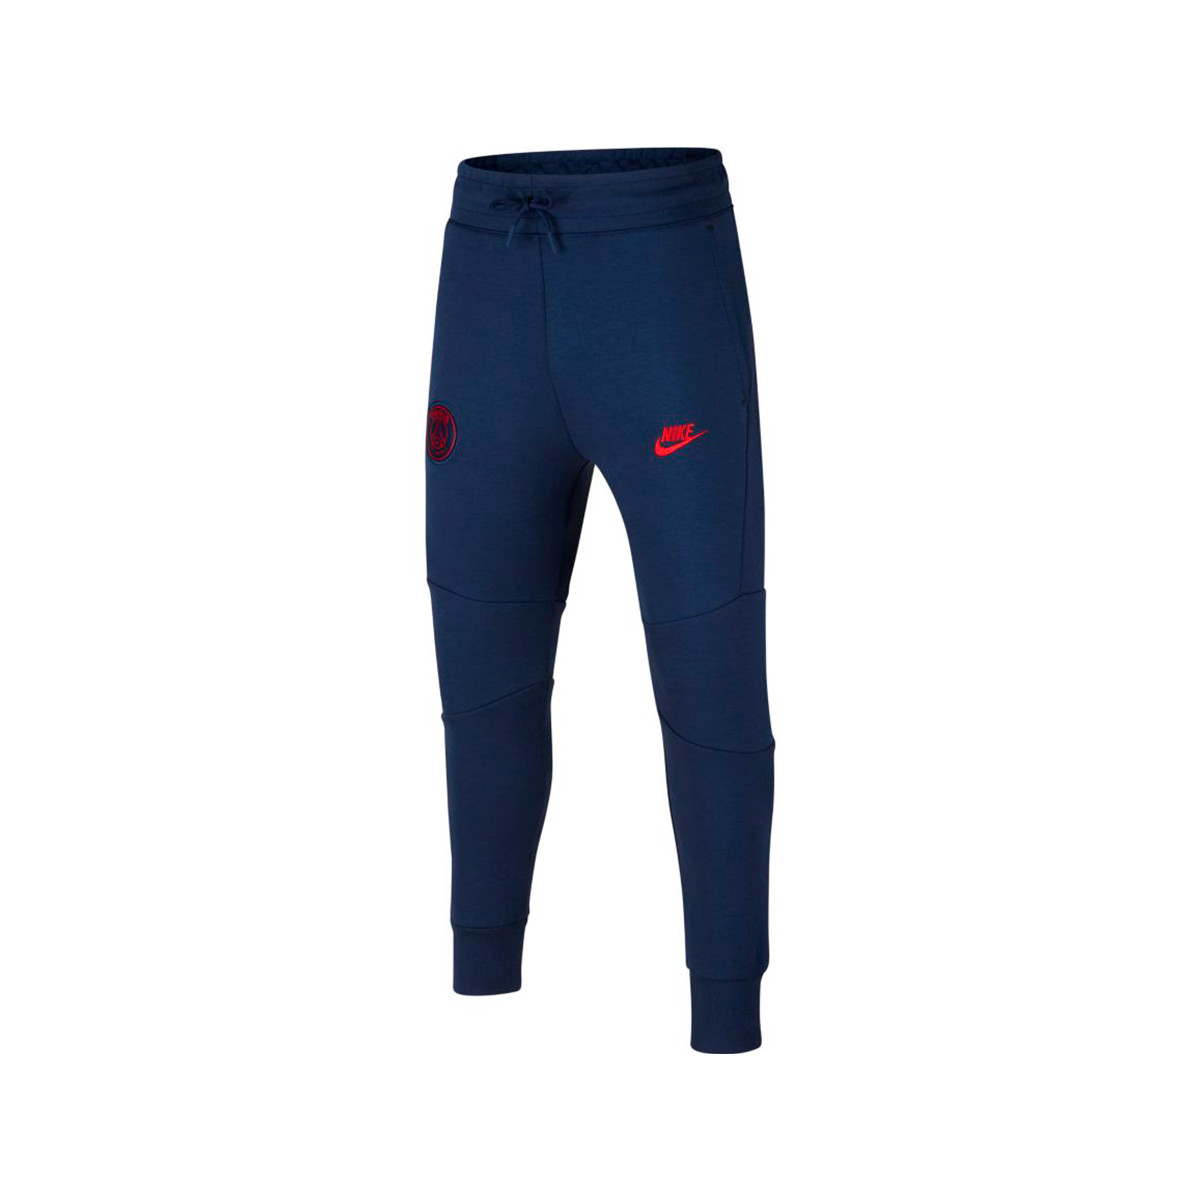 Long Pants Nike Paris Saint Germain Nsw Tech Fleece Cl 2019 2020 Nino Midnight Navy University Red Football Store Futbol Emotion